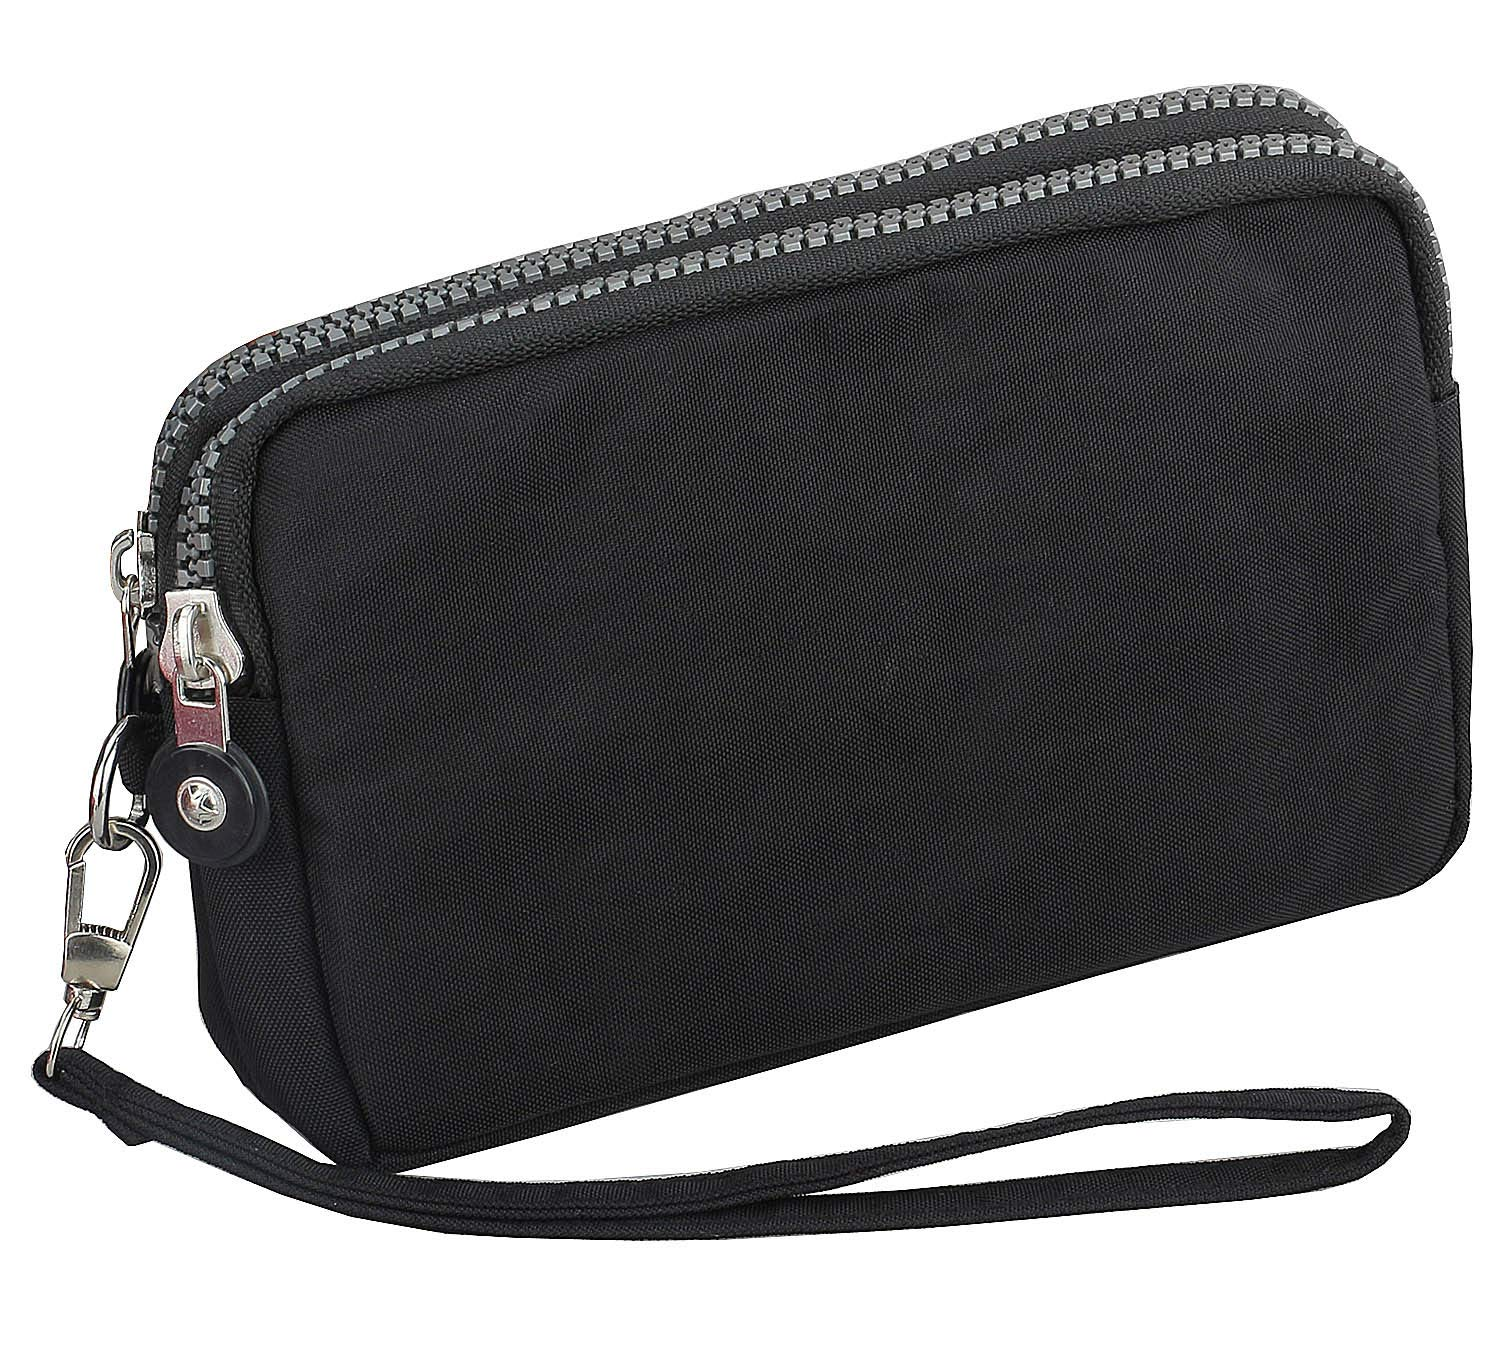 3 Zippers Clutch Wallet Waterproof Nylon Cell phone Purse Wristlet Bag Money Pouch for Women (Black) by Coolstar (Image #3)